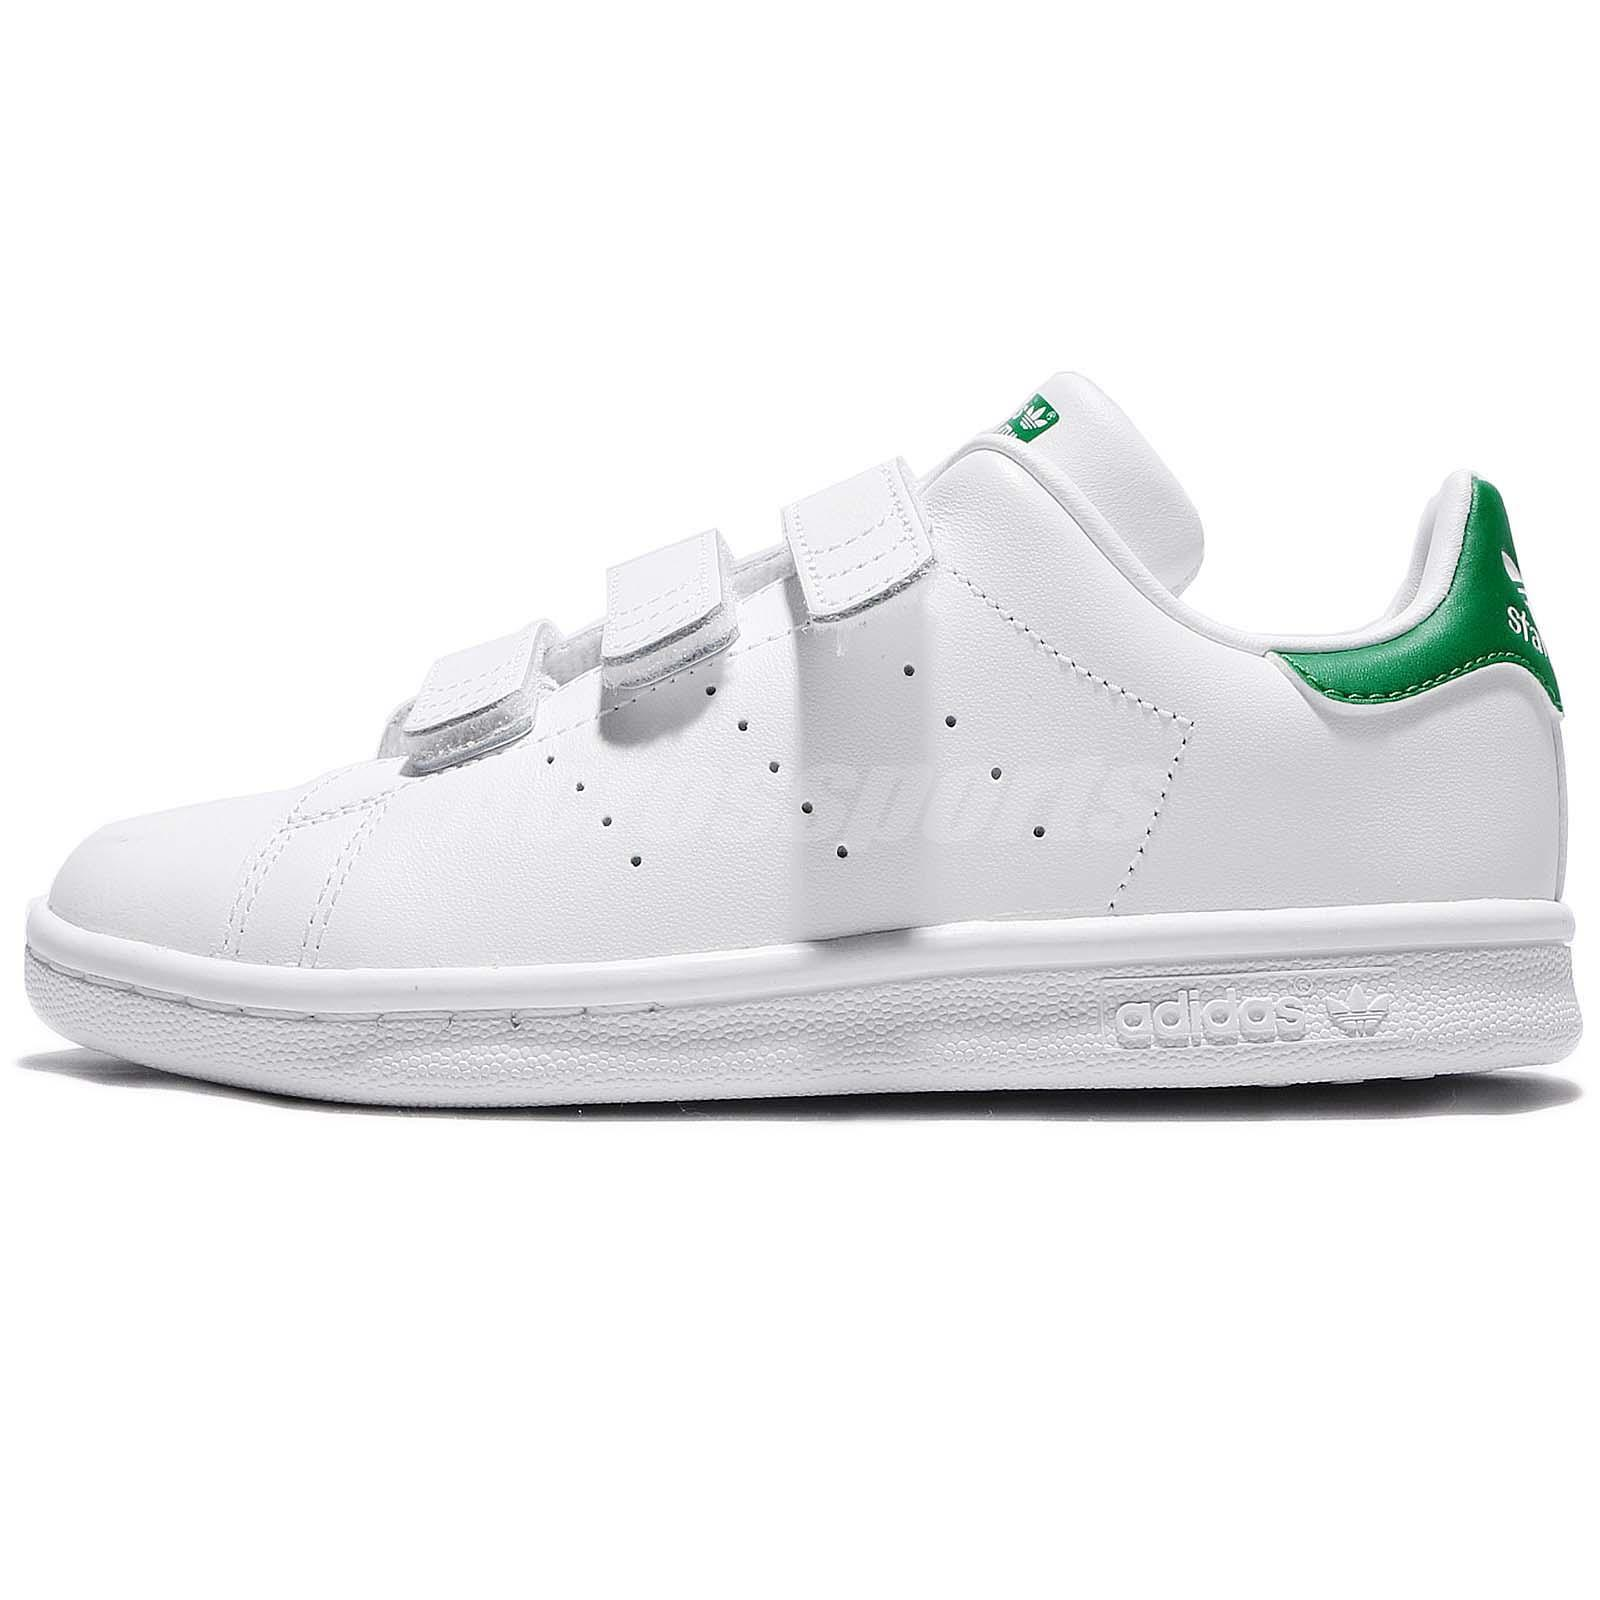 adidas Originals Stan Smith CF C White Green Leather Kids Junior Shoes M20607